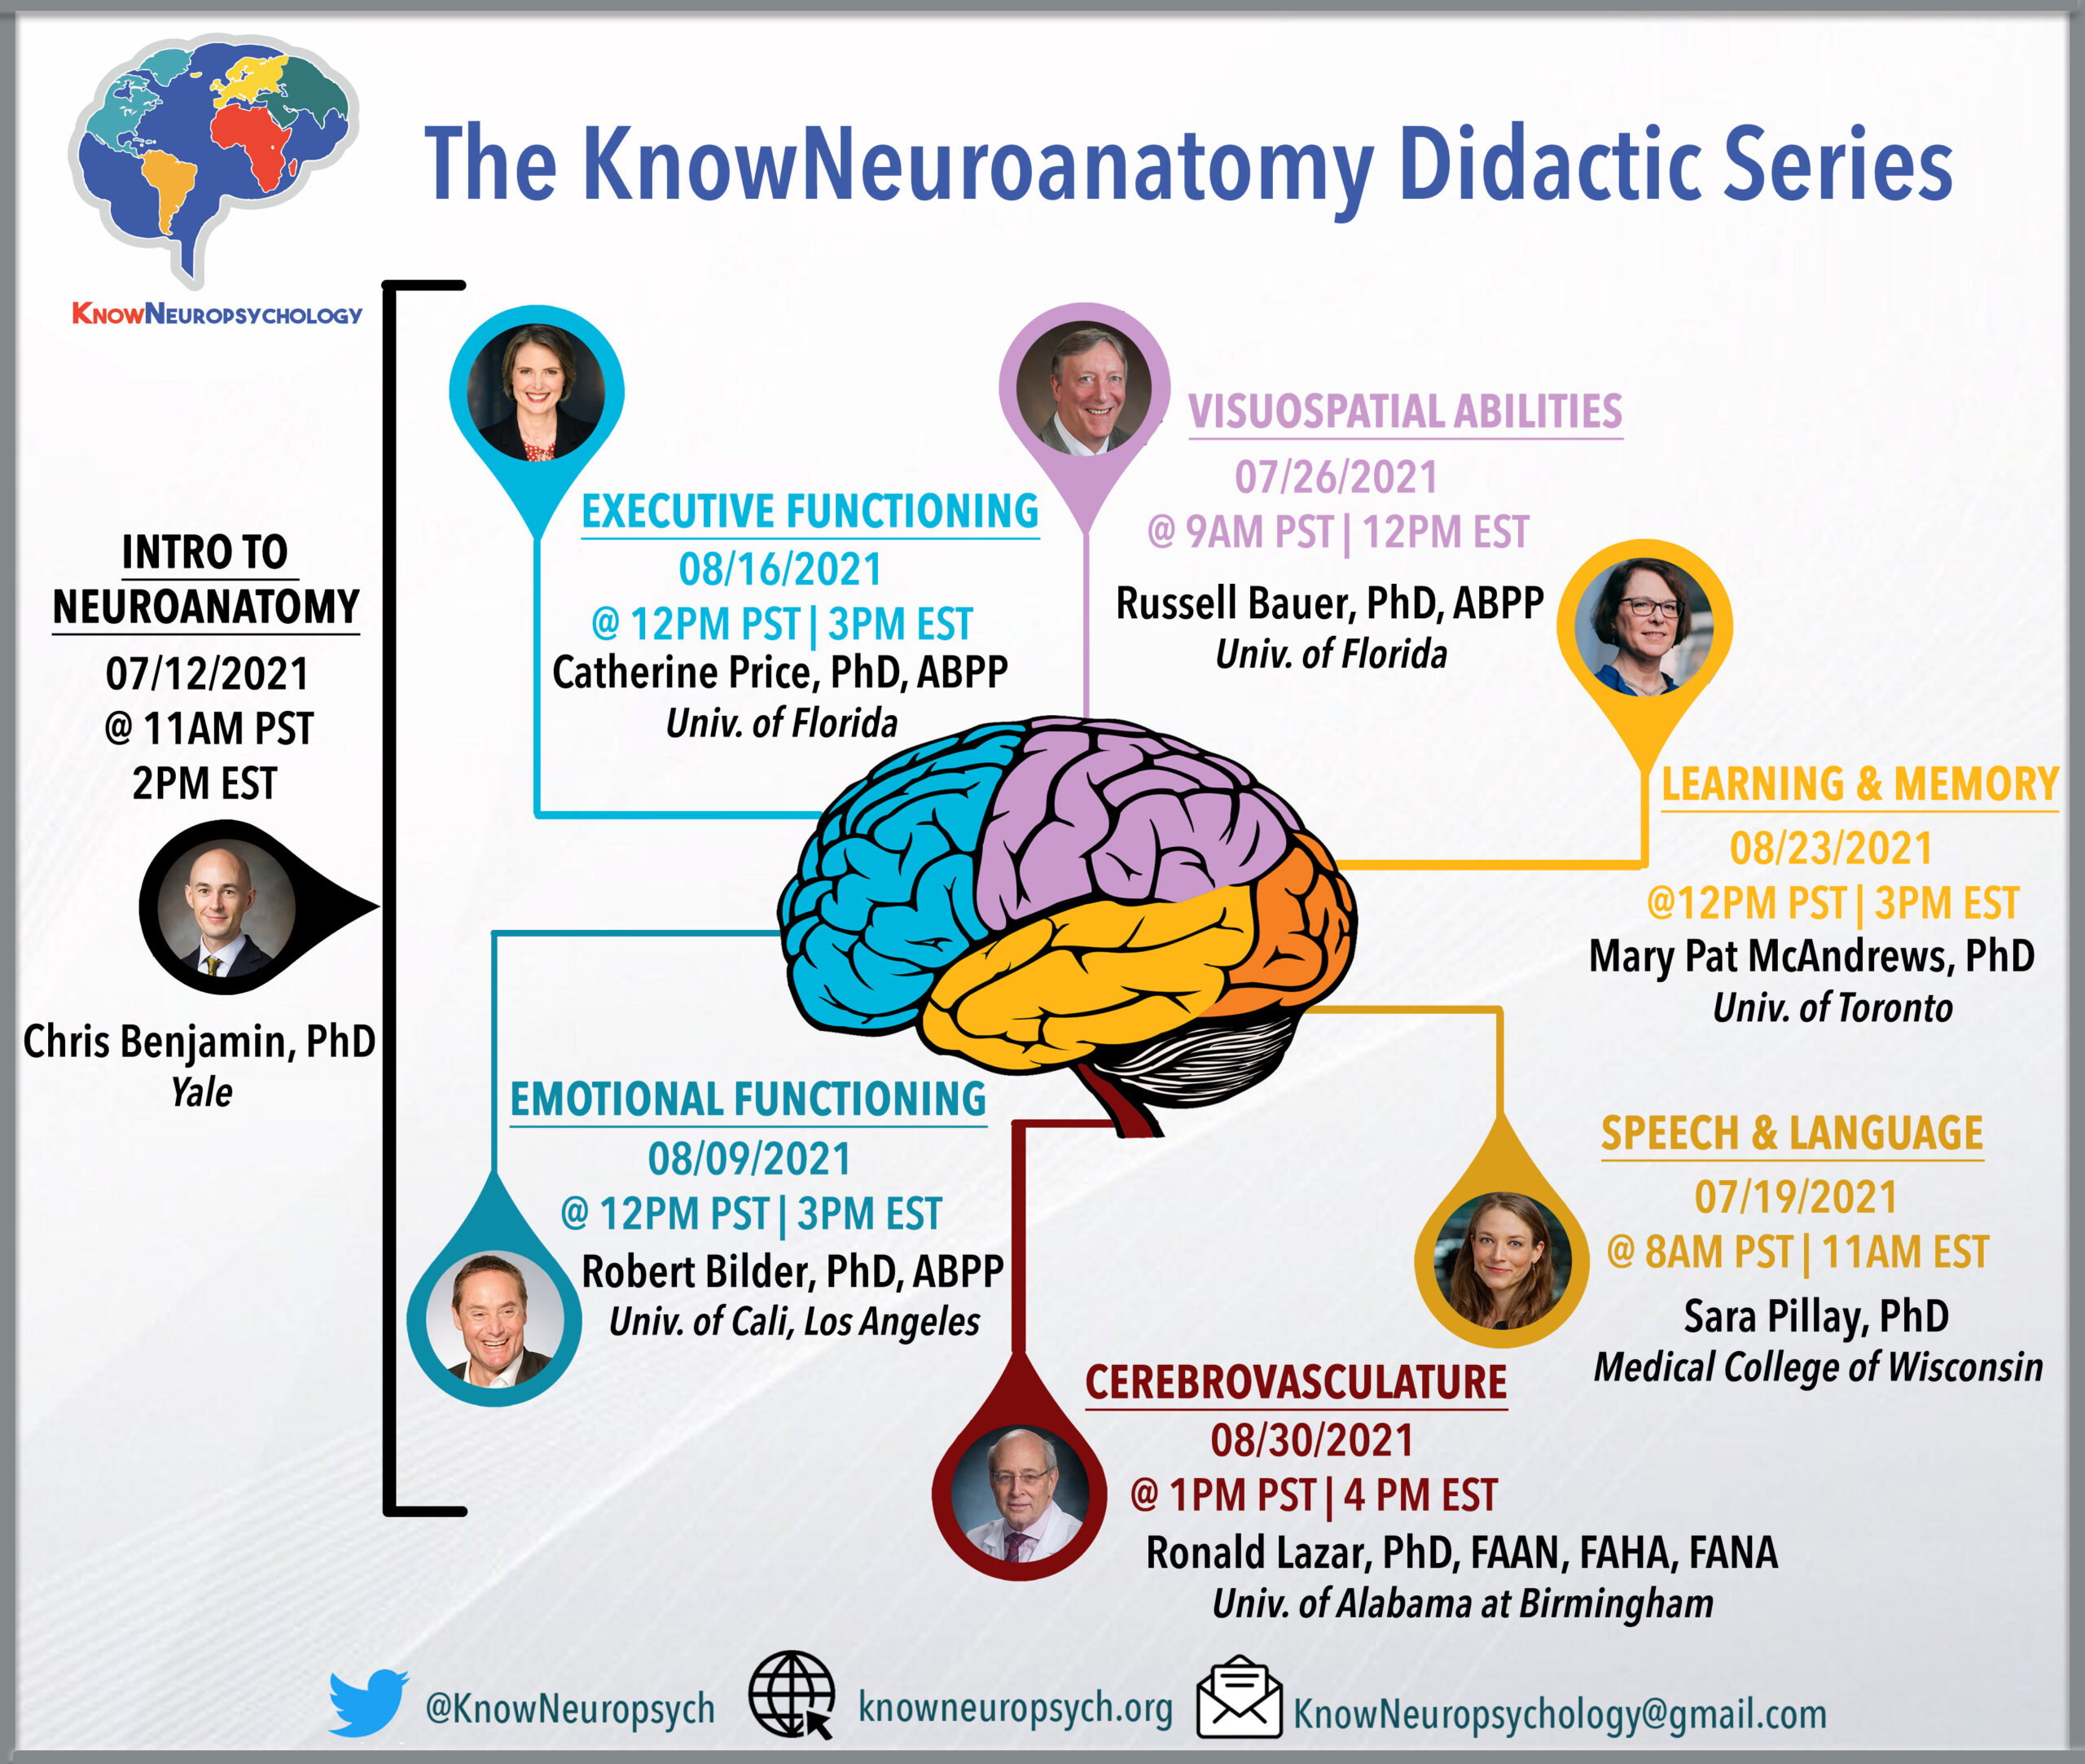 KnowNeuroanatomy Didactic Series: Monday 7/12/21 @ 2pm EST, Introduction to Neuroanatomy with Dr. Chris Benjamin. Monday 7/19/21 @11am EST, Speech and Language with Dr. Sara Pillay. Monday 7/26/21 @12pm EST, Visuospatial abilities with Dr. Russell Bauer. Monday 8/9/21 @ 3pm EST, Emotional Functioning with Dr. Robert Bilder. Monday 8/16/21, Executive functioning with Dr. Catherine Price. Monday 8/23/21 @ 3pm EST, Learning and Memory with Dr. Mary Pat McAndrews. Monday 8/30/21 @ 4pm EST, Cerebrovasculature with Dr. Ronald Lazar.